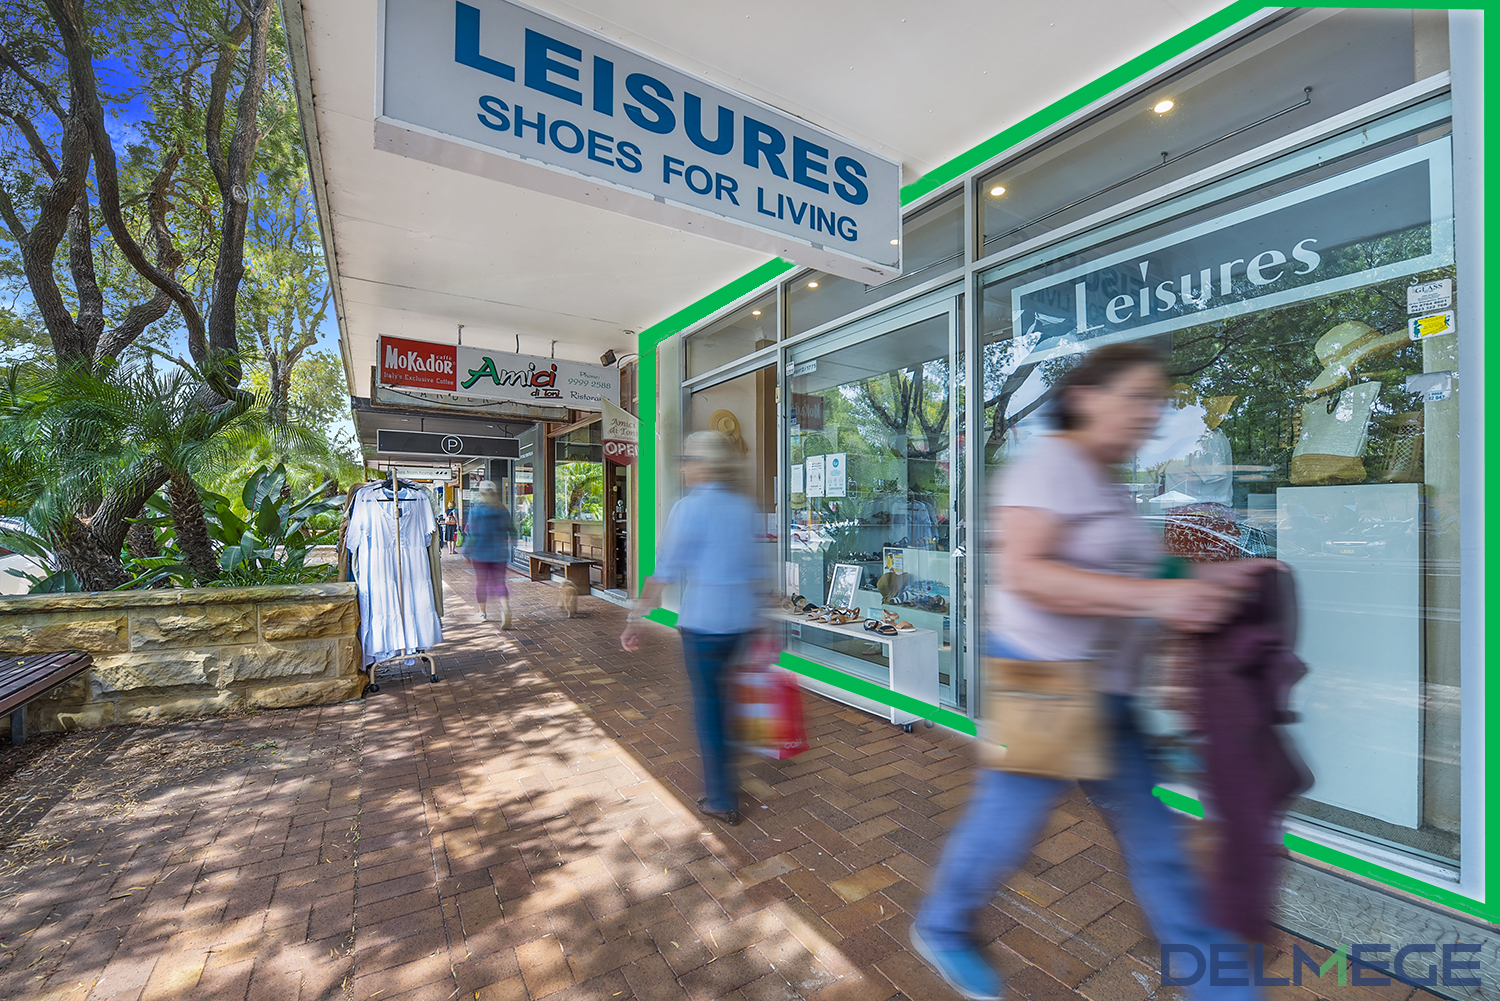 Commercial Property leased in Mona Vale